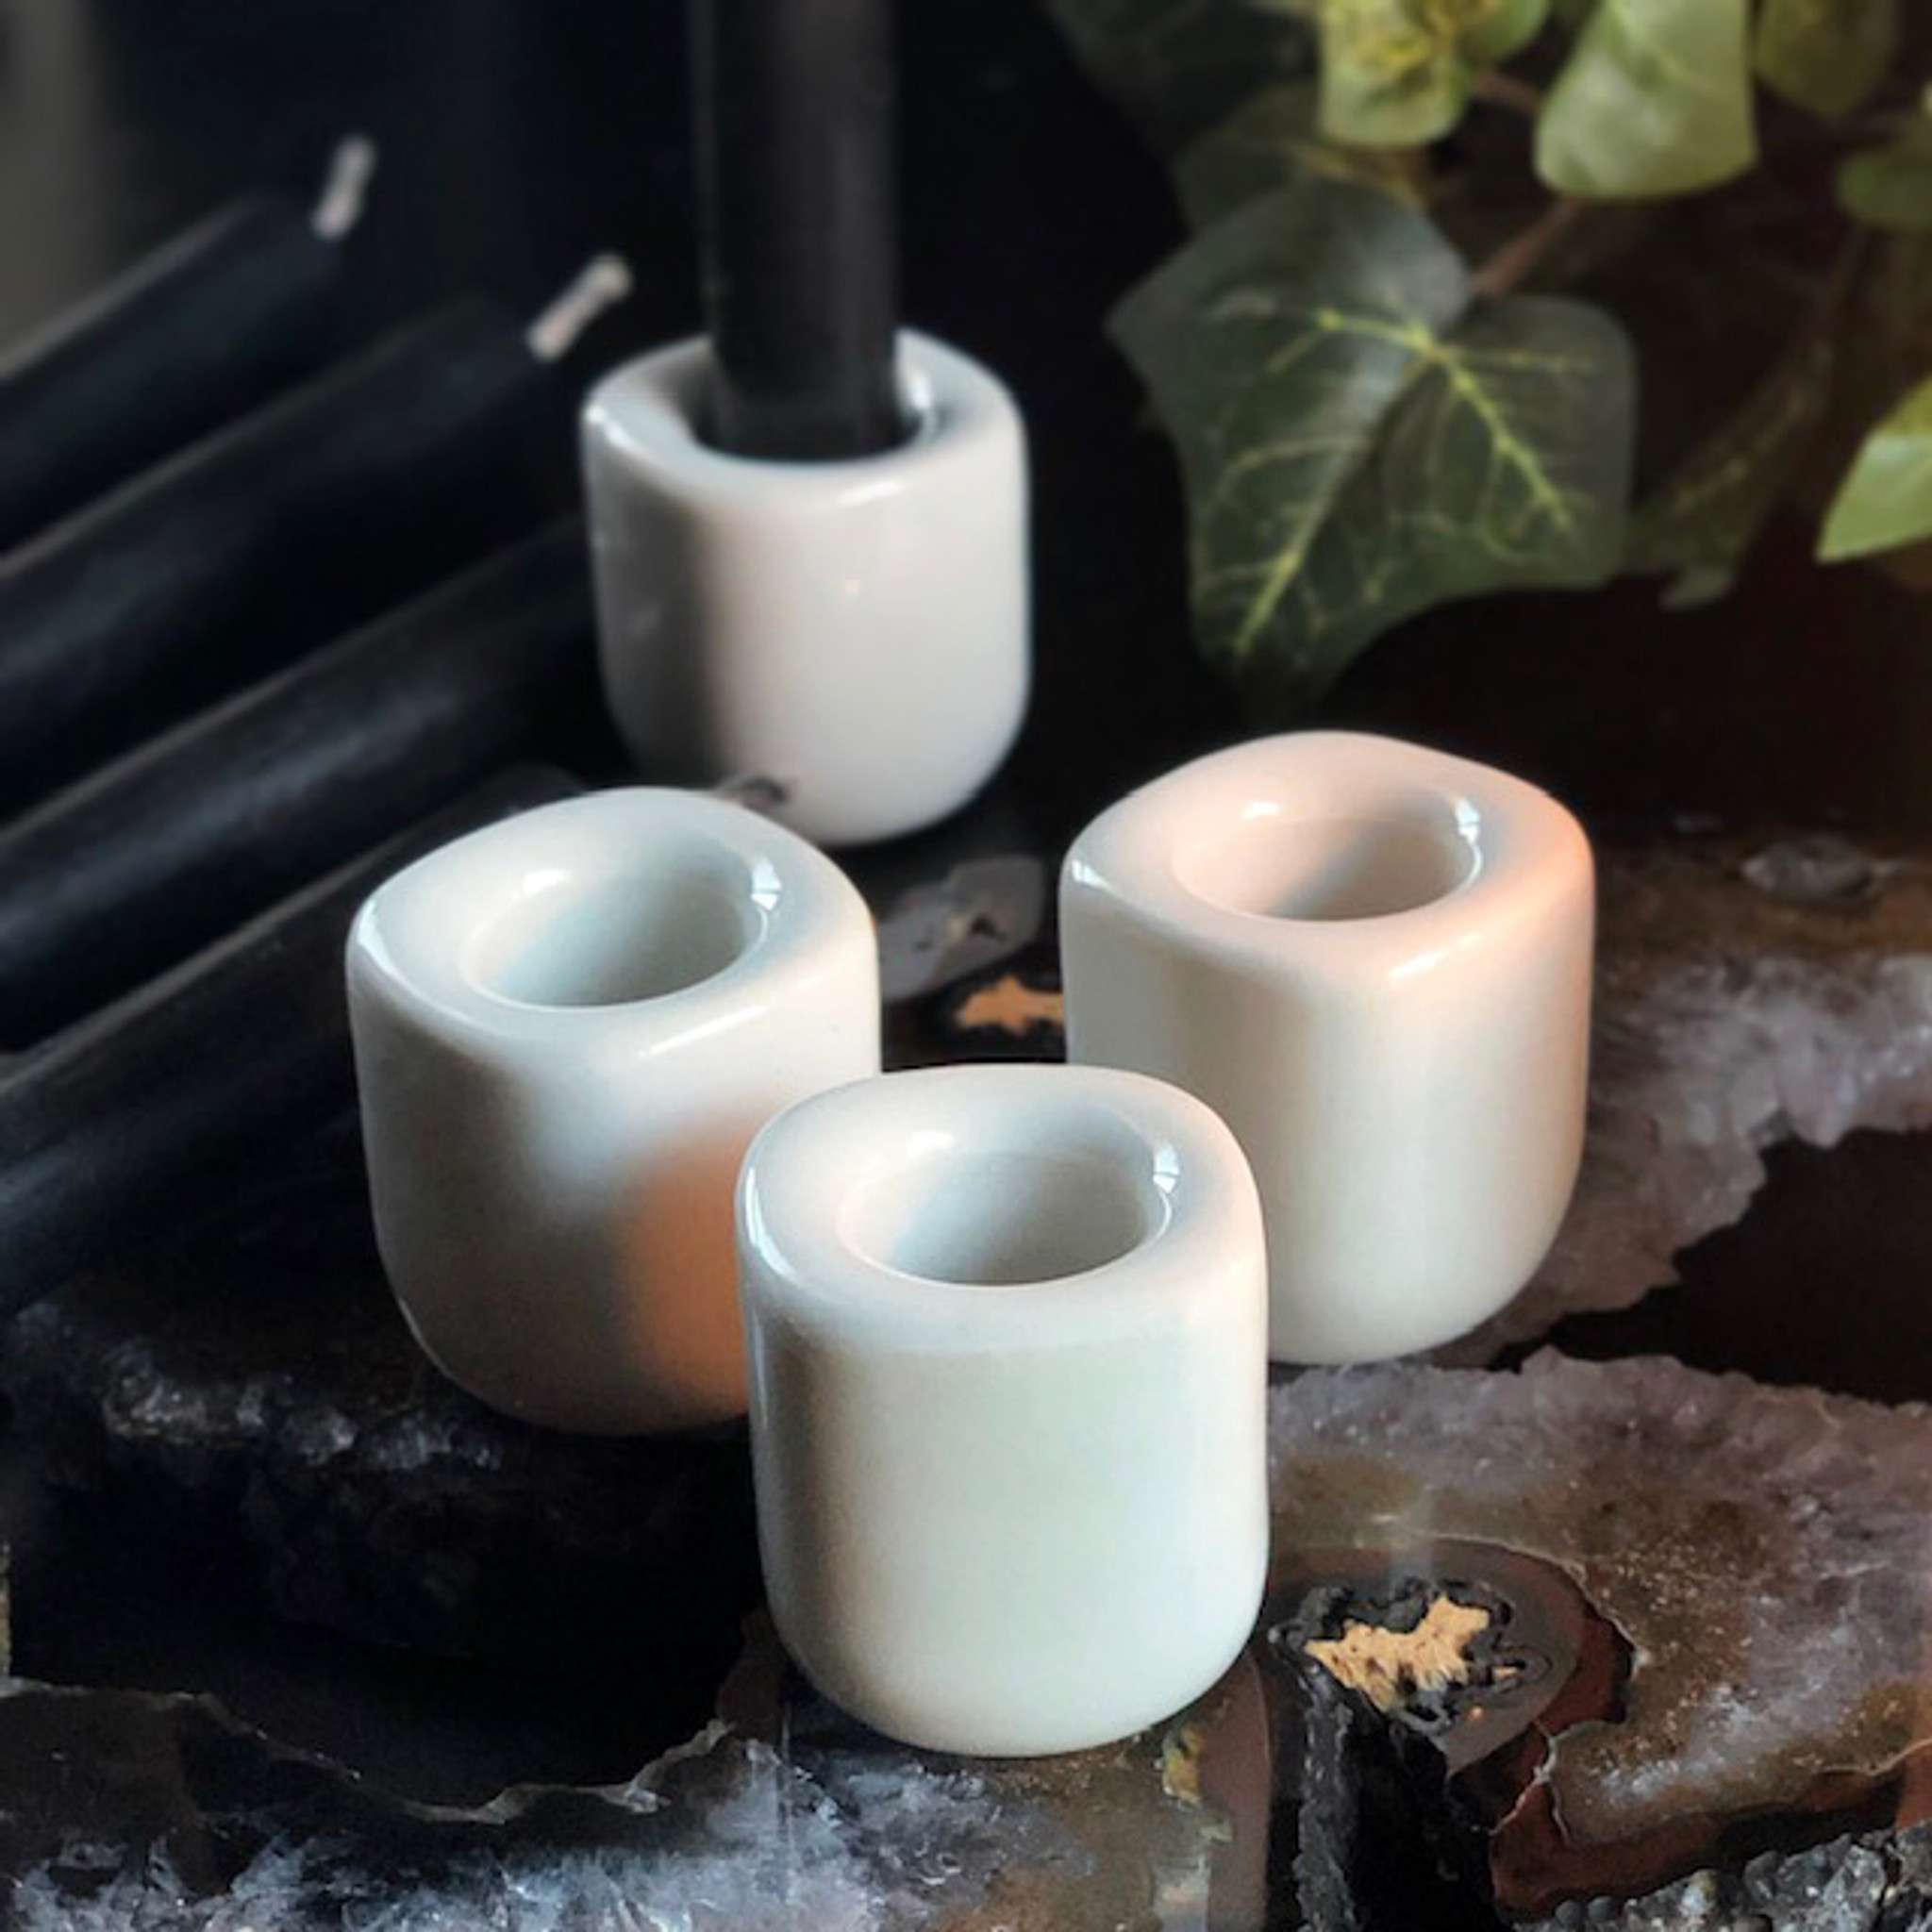 Porcelain Candle Holders Glass Ceramic 7/7 inch for Mini Spell Candles